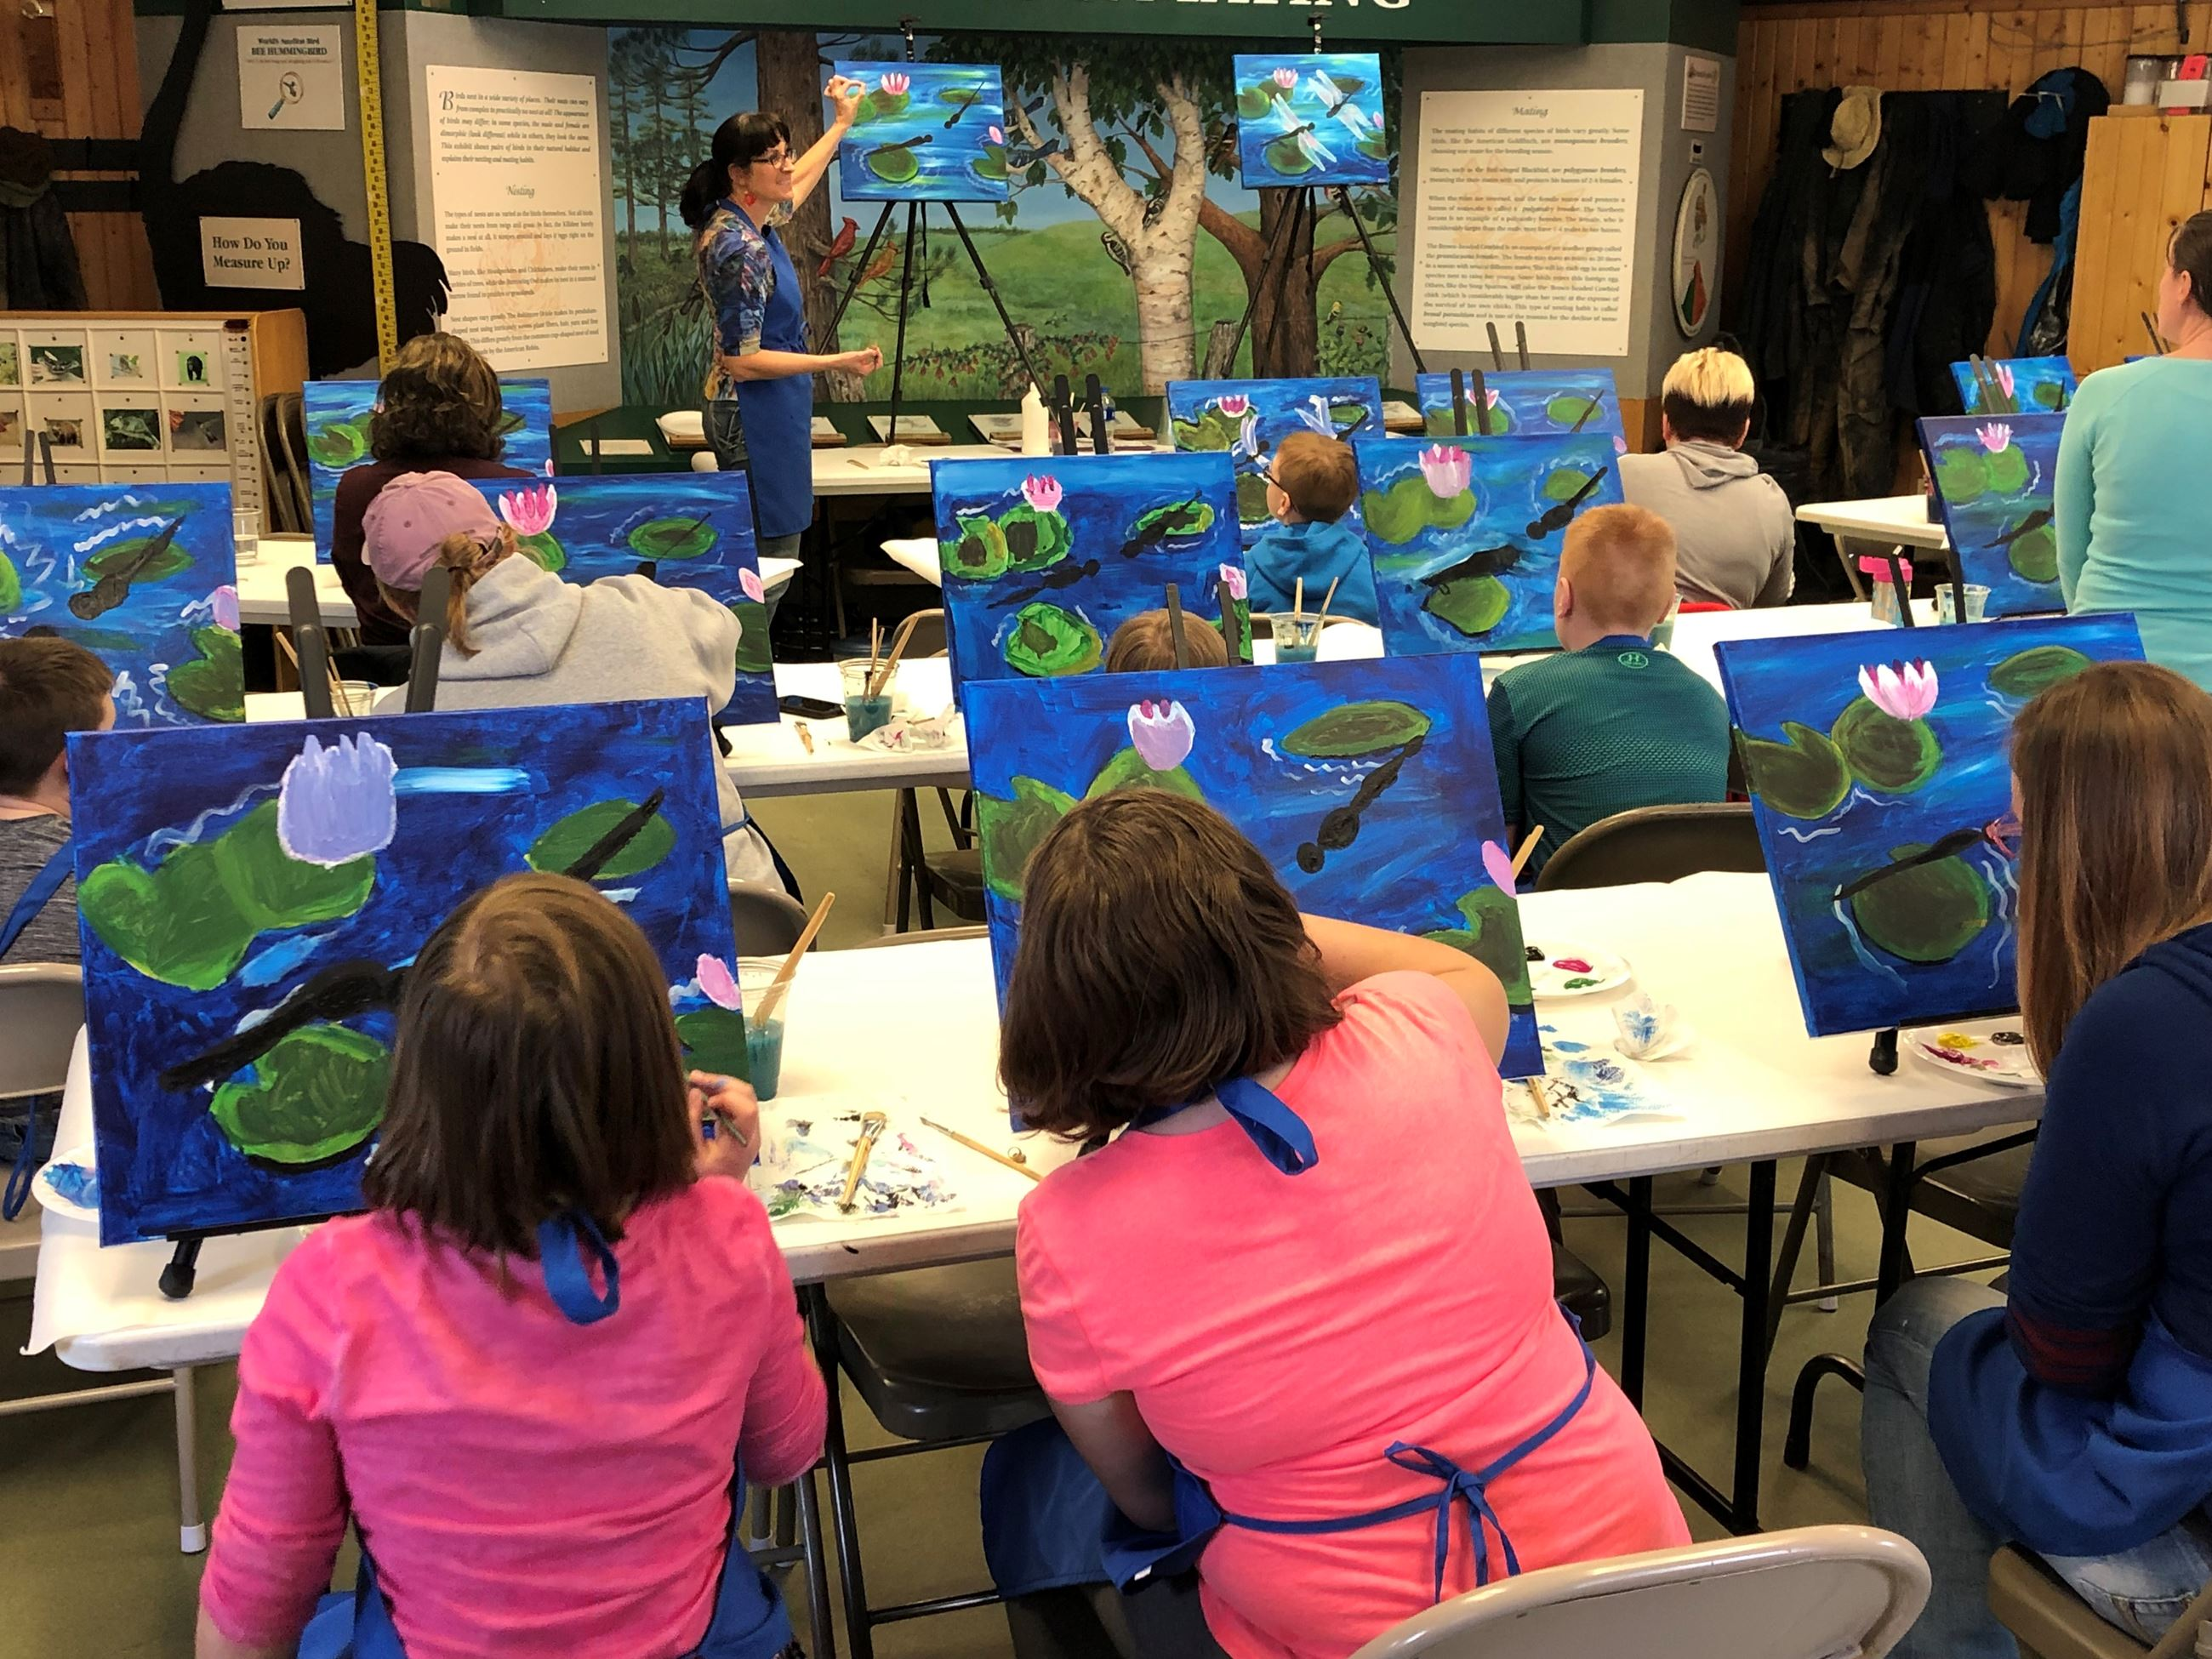 Ten people doing a guided painting class. The instructor is at the front of the room showing people